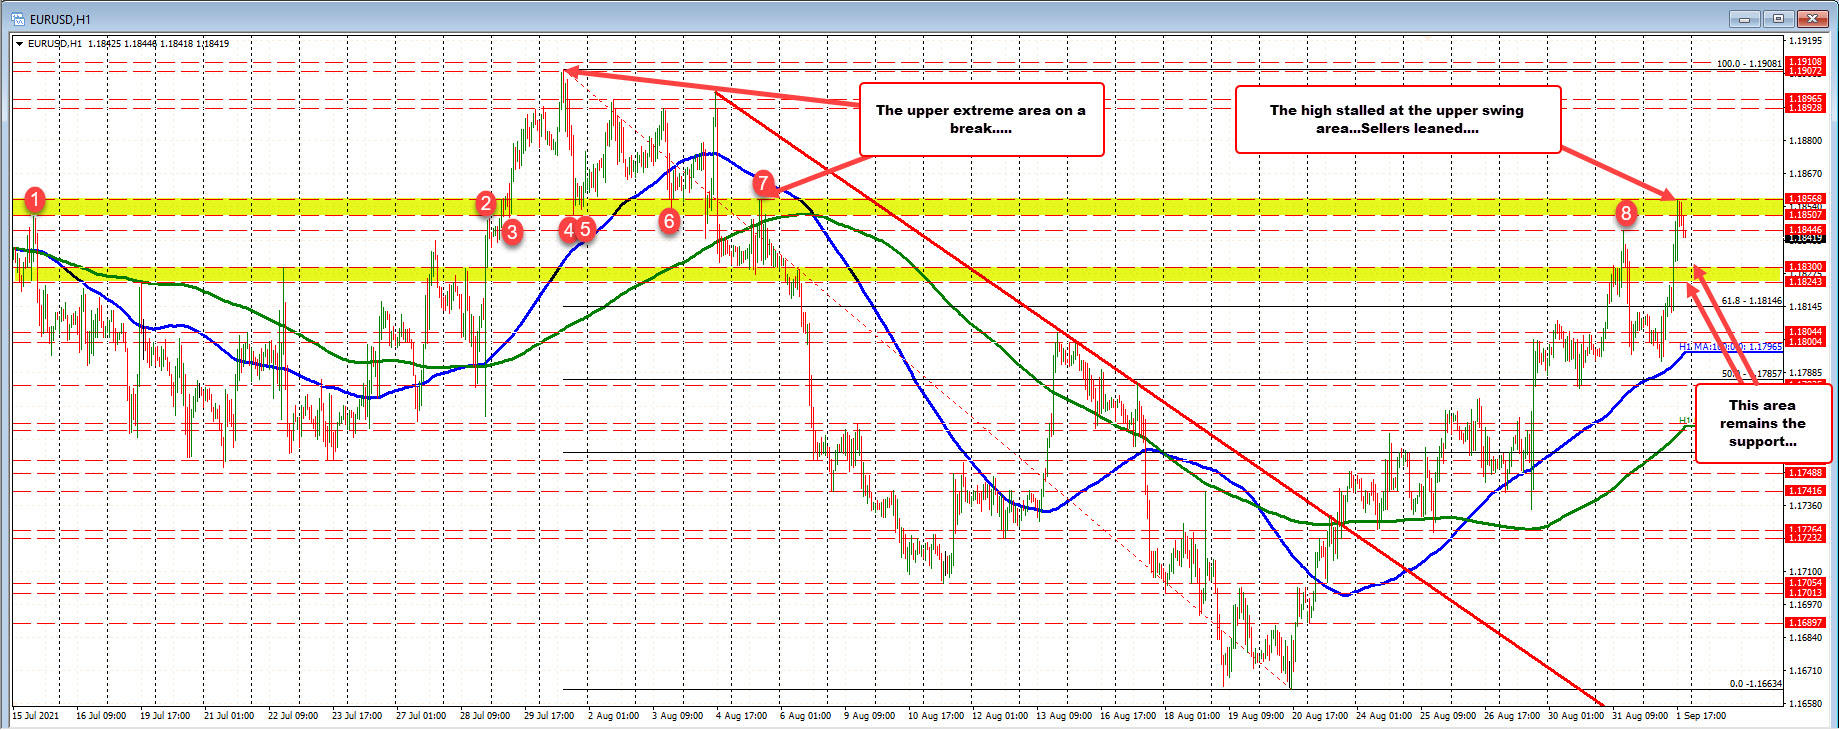 The swing area from 1.18507 to 1.18568 stalled the rally